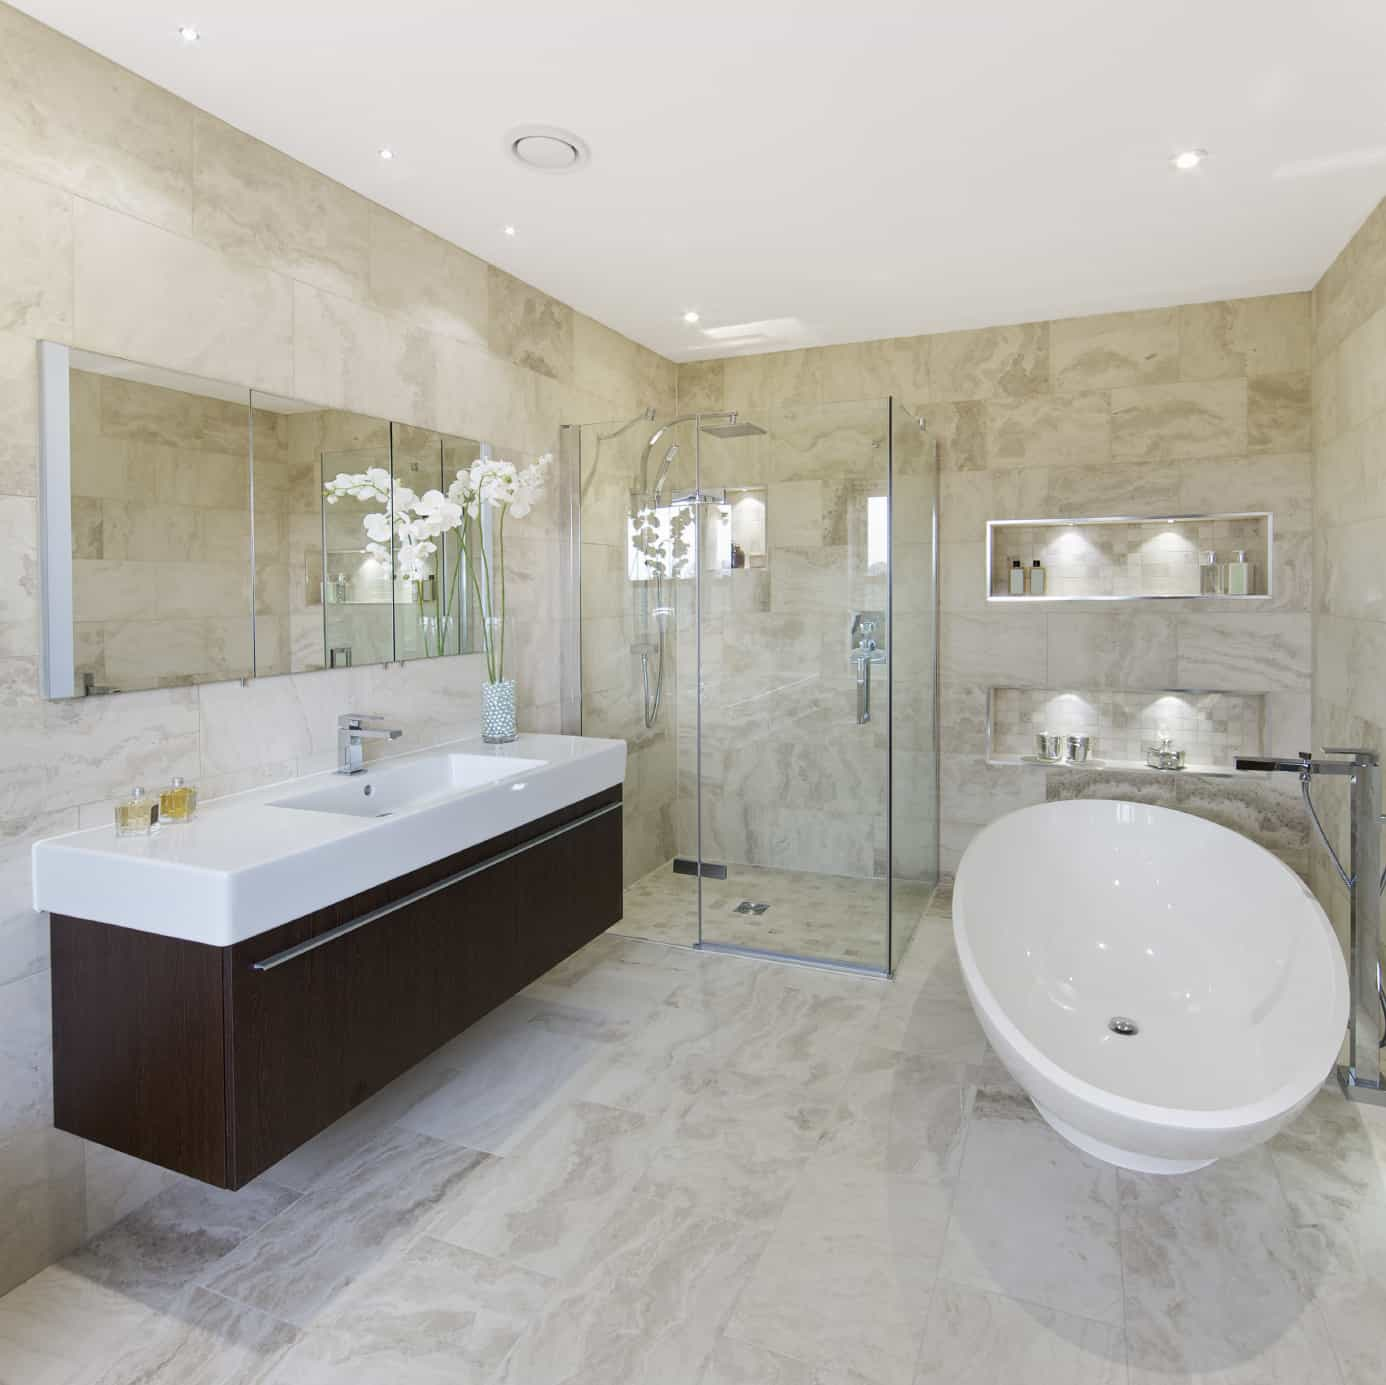 Large master bathroom with a freestanding tub and a walk-in shower. The tiles flooring matches the tiles walls. The floating vanity sink looks perfect as well.